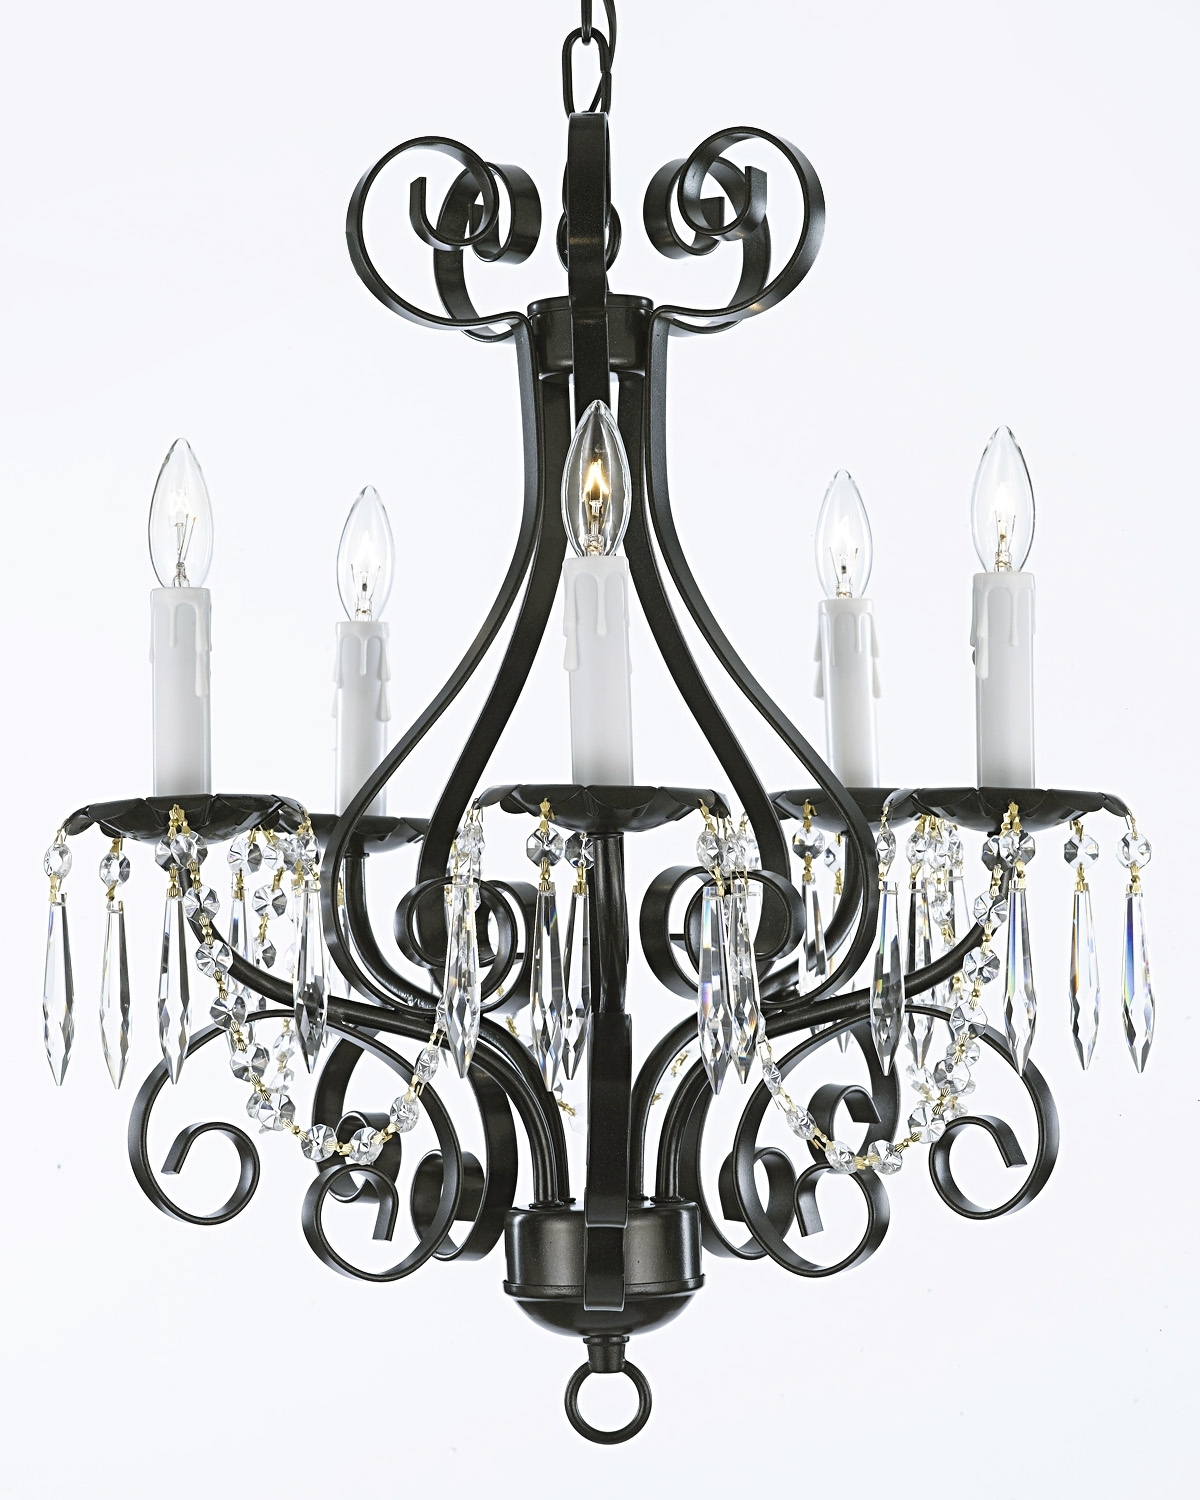 Black Iron Chandeliers With Regard To Most Up To Date Chandelier (View 11 of 20)